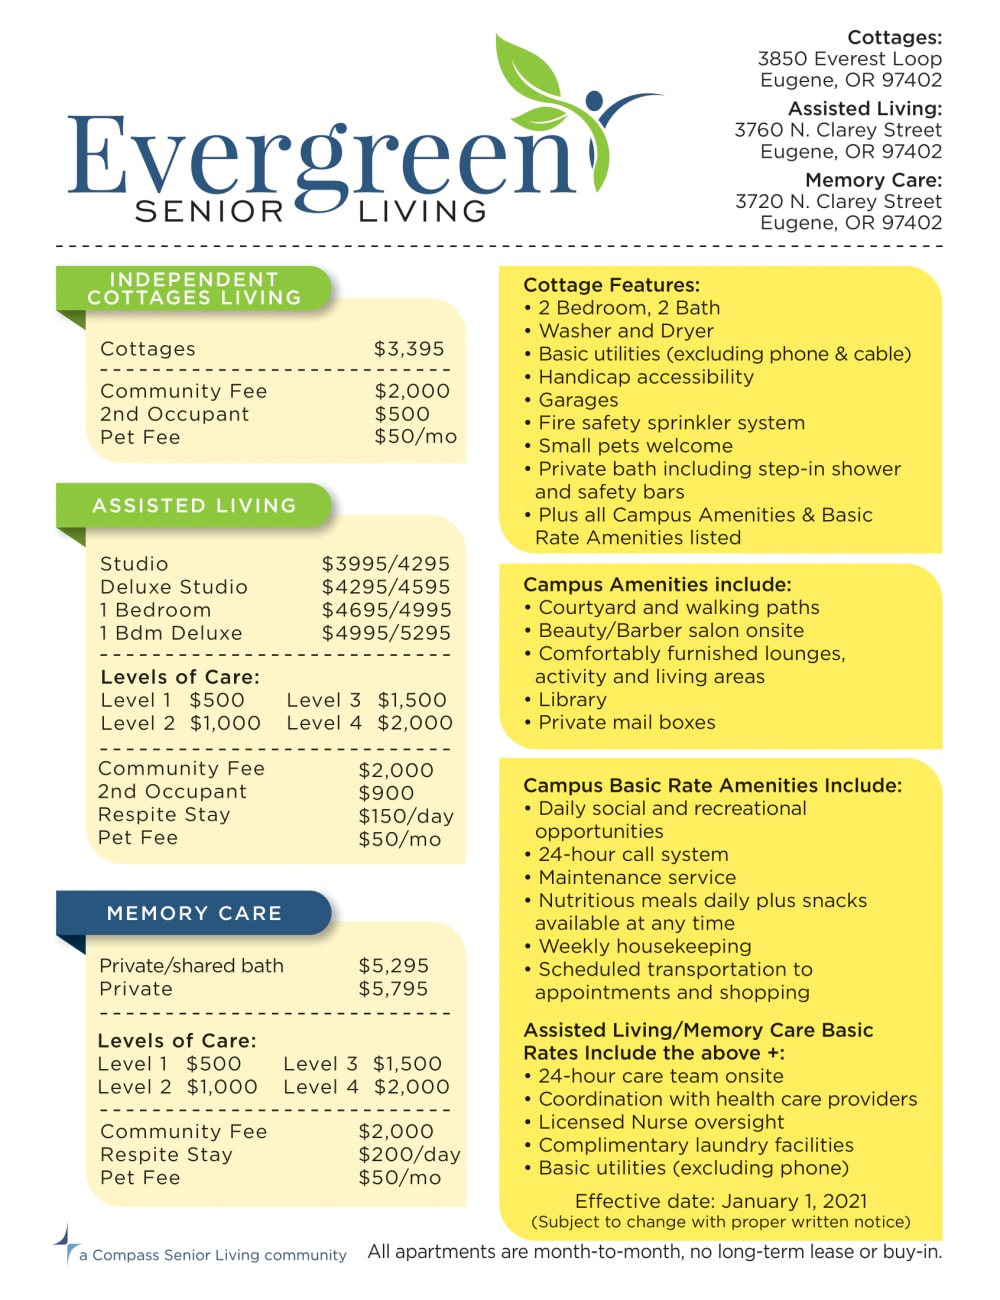 Rates at Evergreen Senior Living